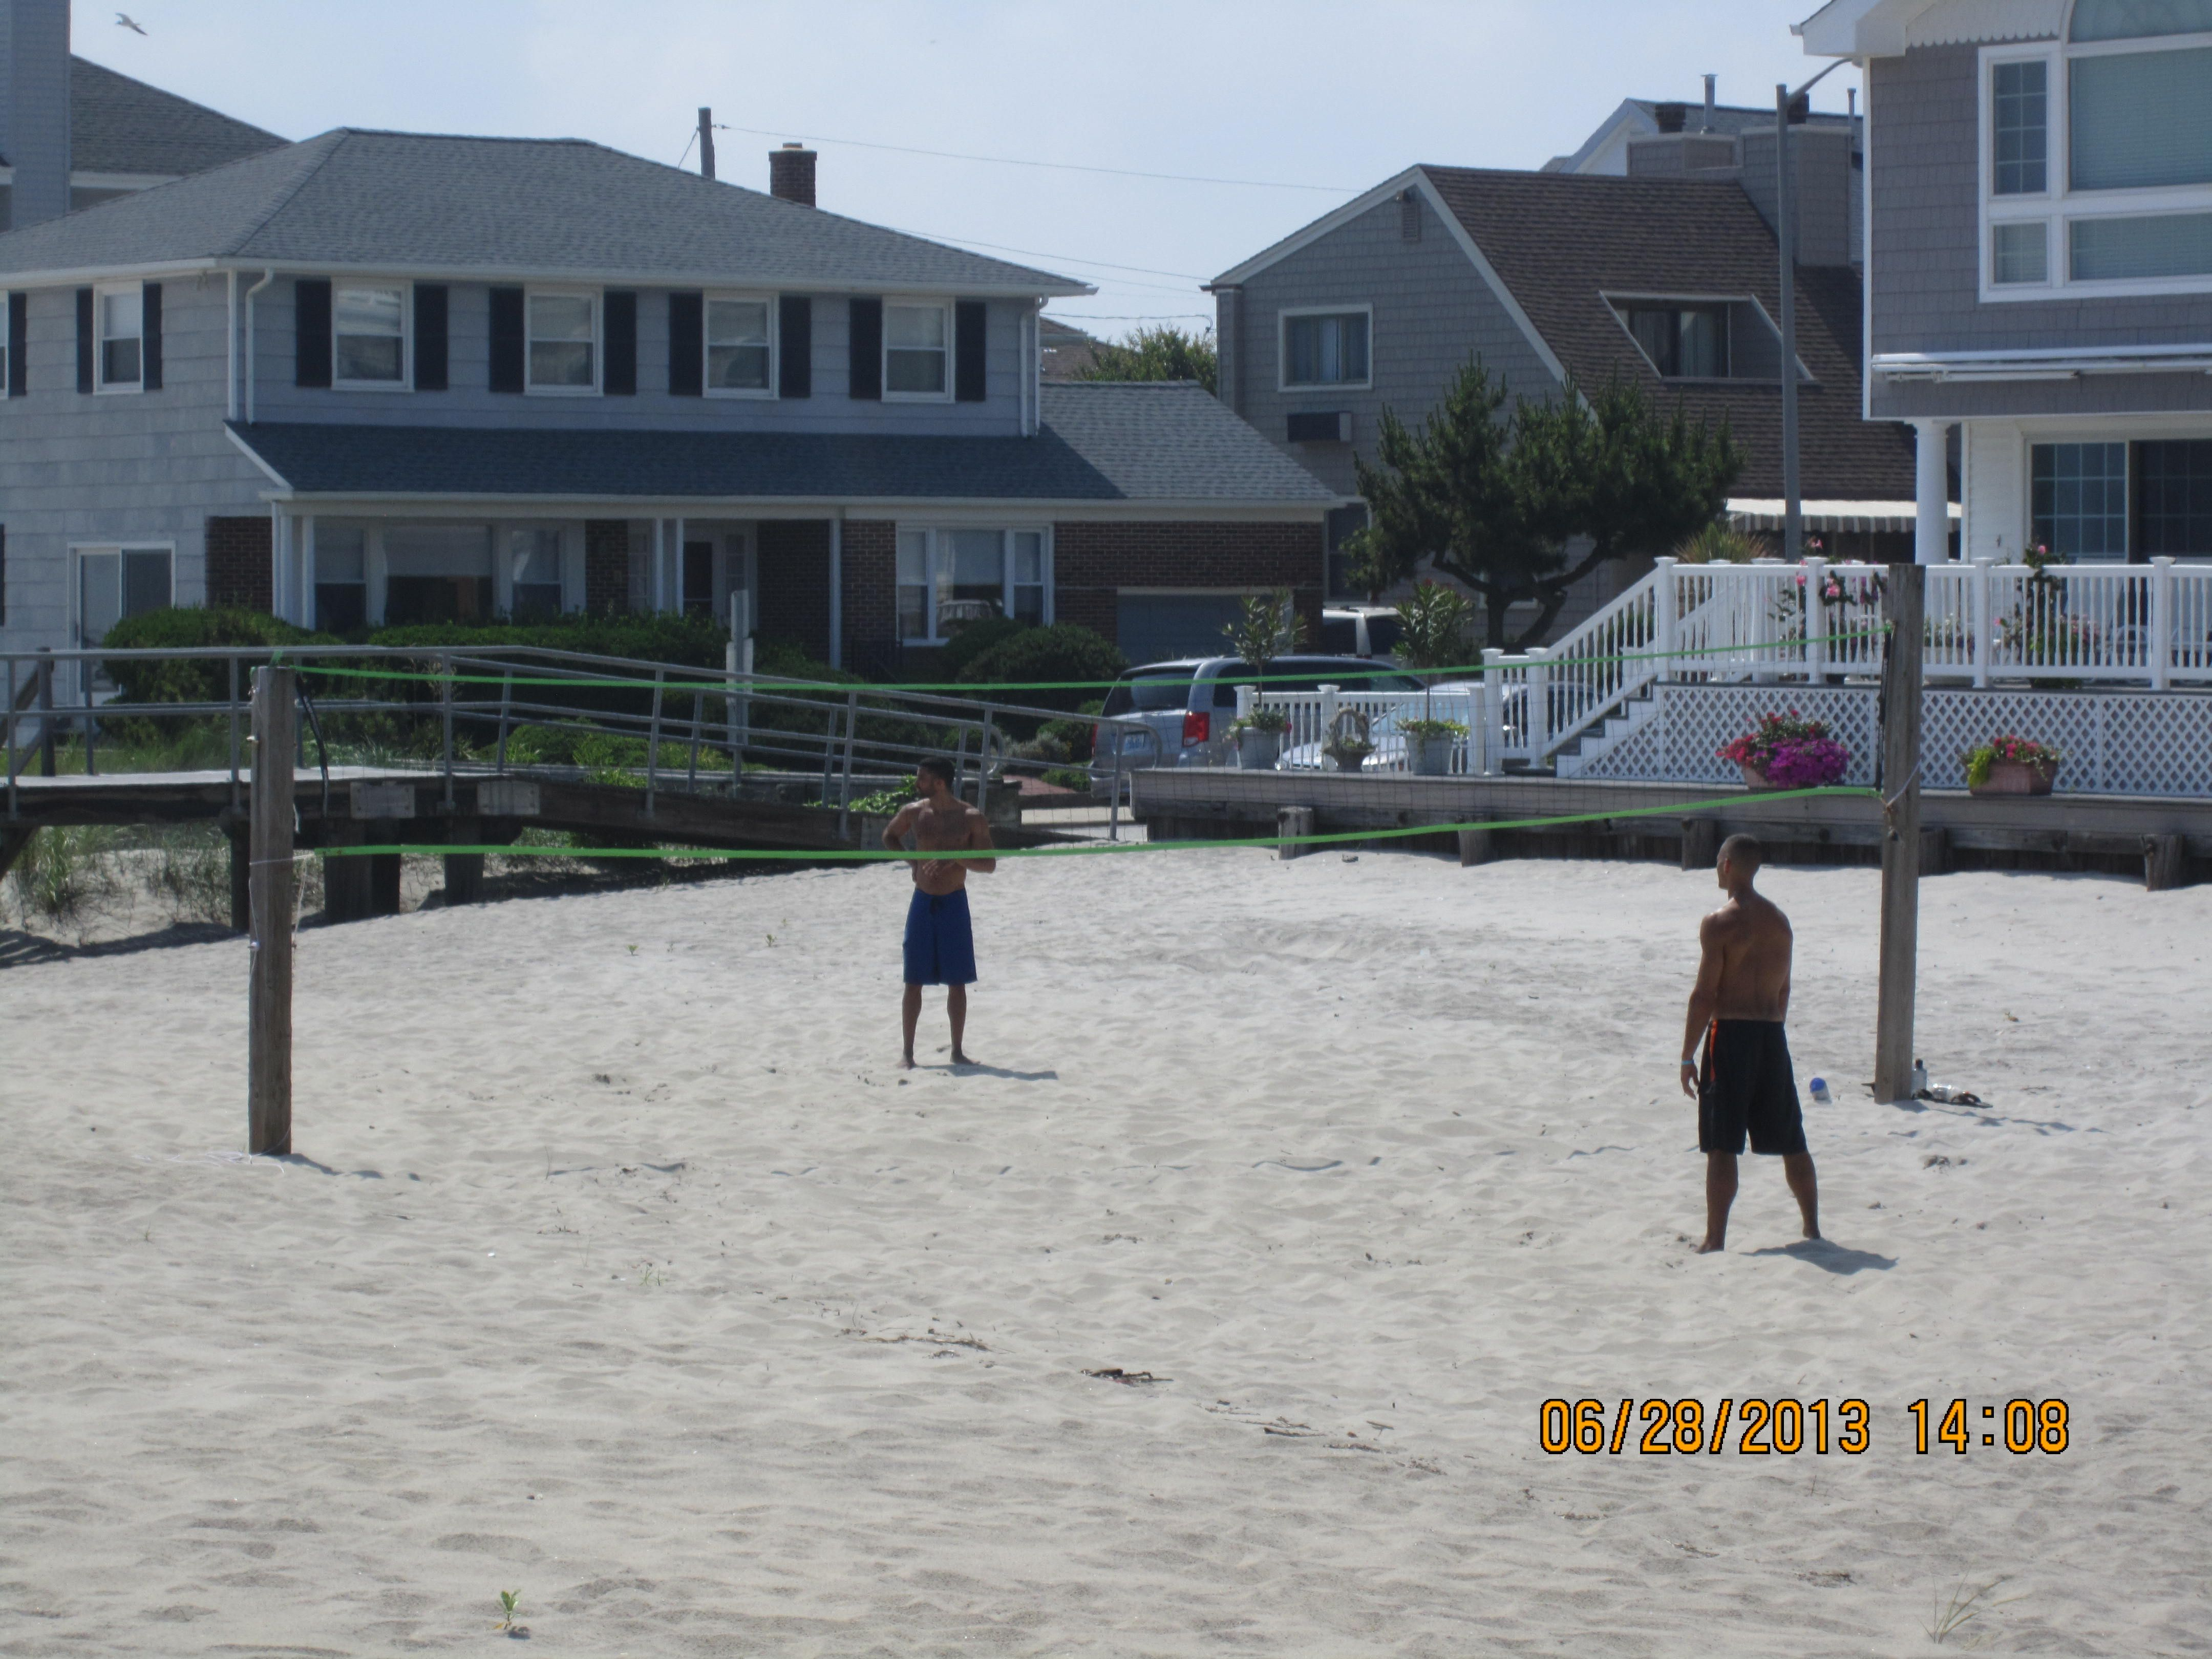 Beach Volleyball Anyone Can Play Scenes Street View Beach